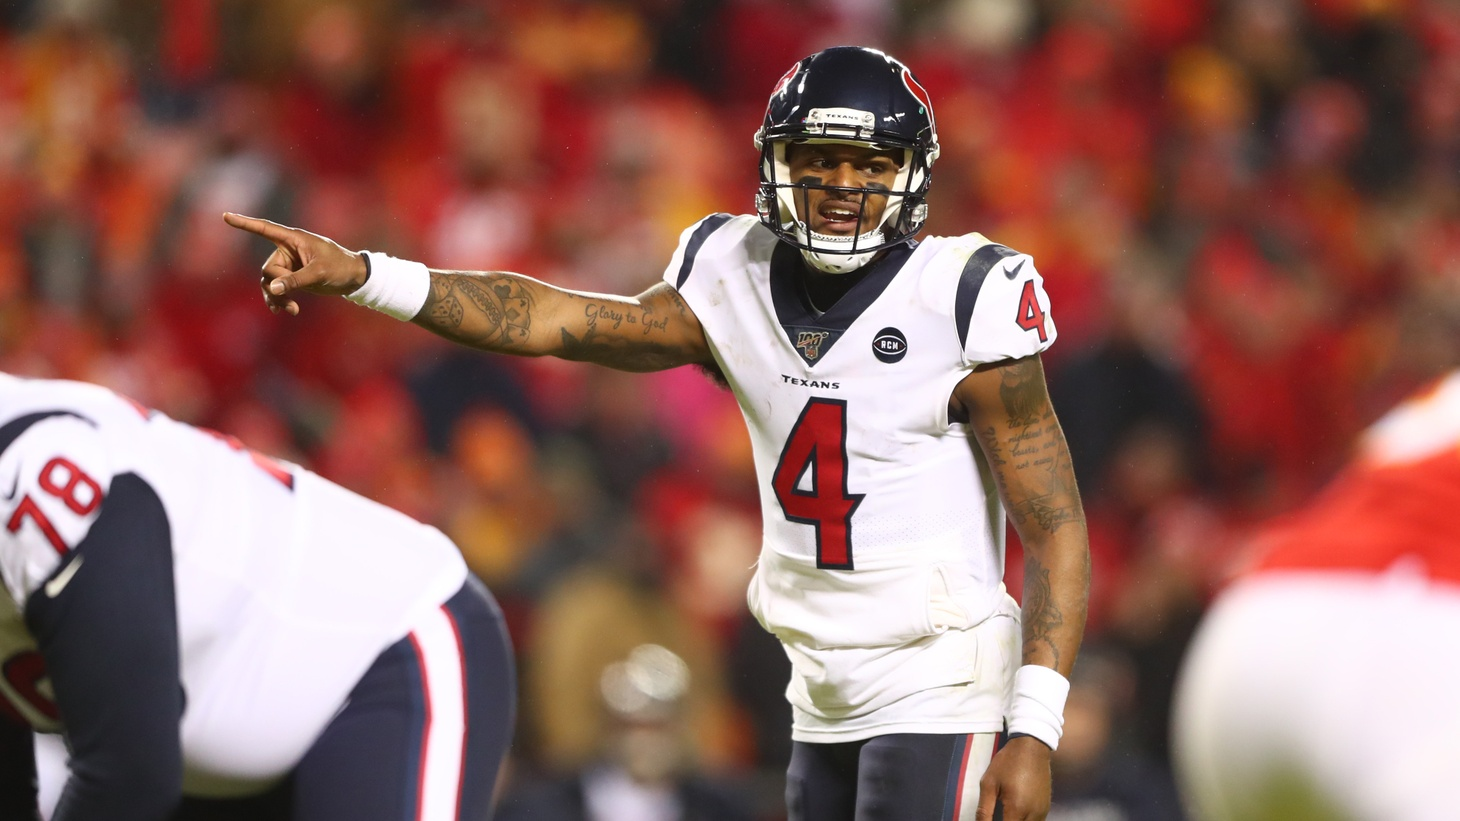 Houston Texans quarterback Deshaun Watson (4) reacts against the Kansas City Chiefs in a football game at Arrowhead Stadium on Jan 12, 2020, in Kansas City, MO. Watson and several other NFL players have posted a social media video pushing the league to condemn racism and support its black players.